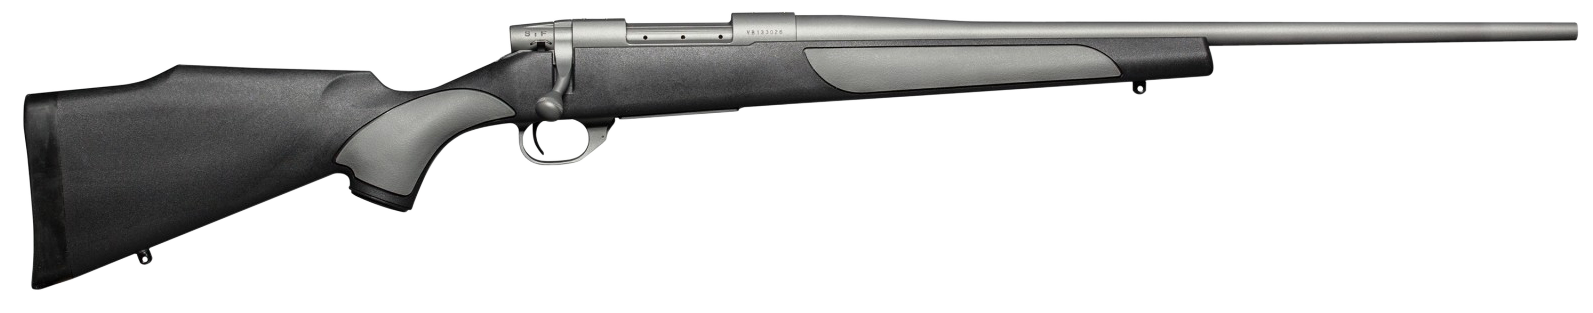 Weatherby Vanguard Weatherguard 300 Wby Mag 26